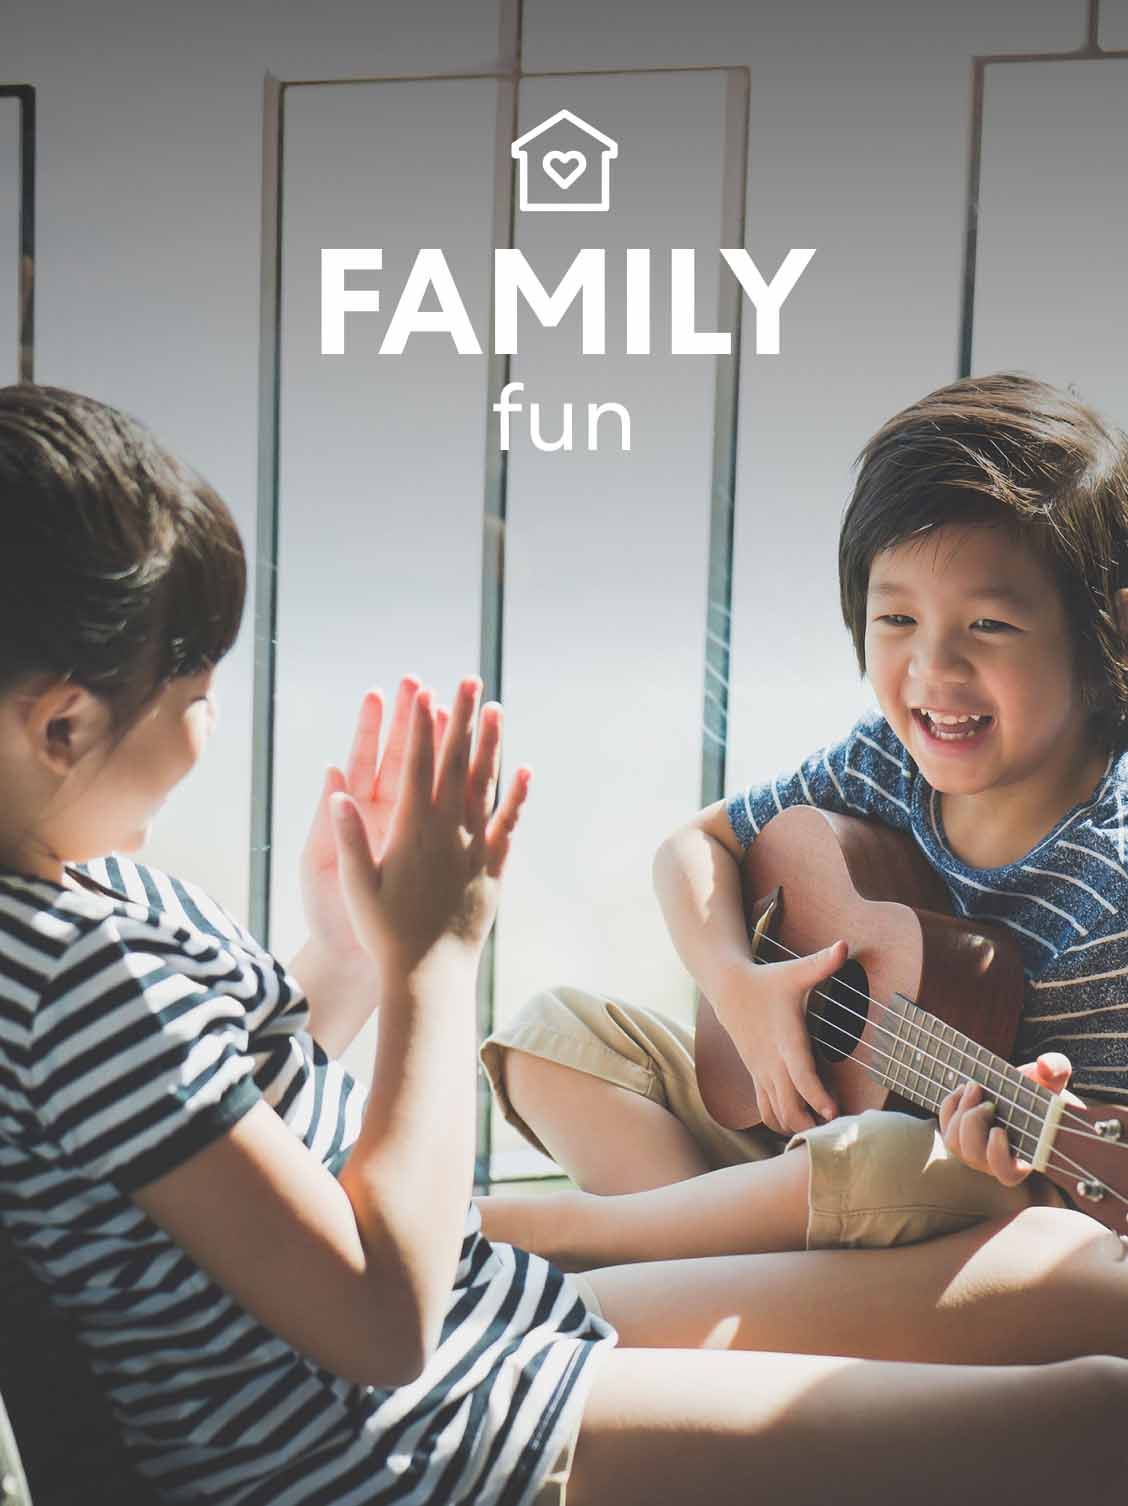 Two children are sitting and having fun. One child is playing the guitar. A superimposed title reads: Family fun.